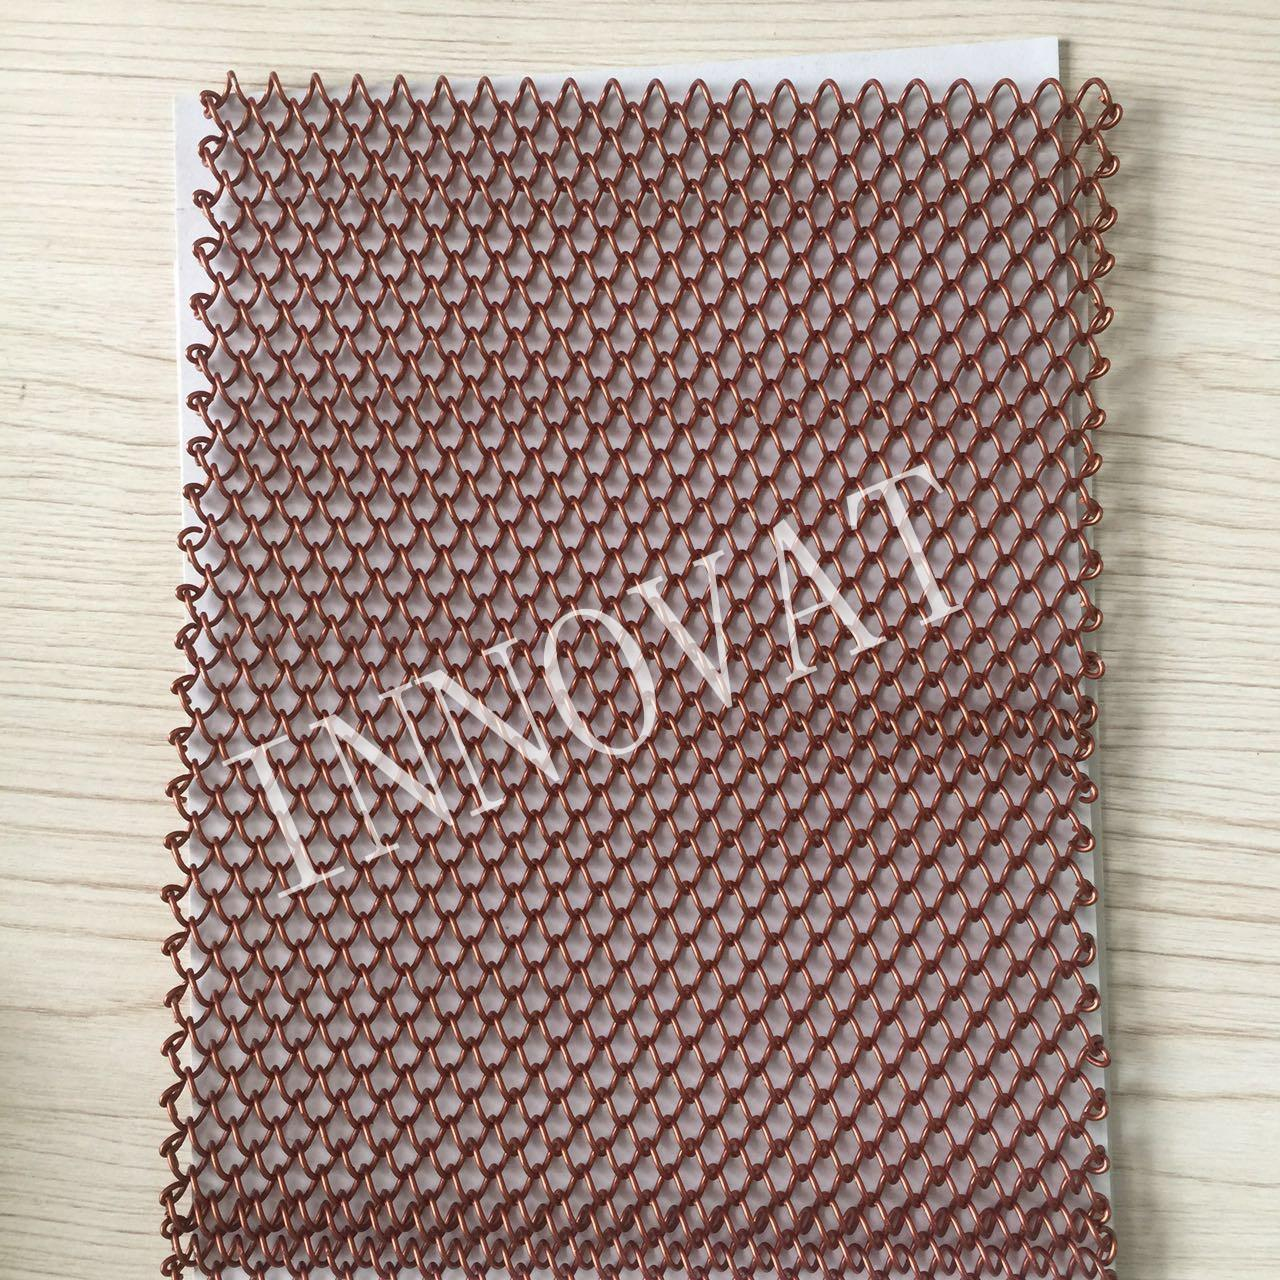 Buy cheap Decorative architectural chain link curtain mesh, metal beads hanging chain curtain, from wholesalers